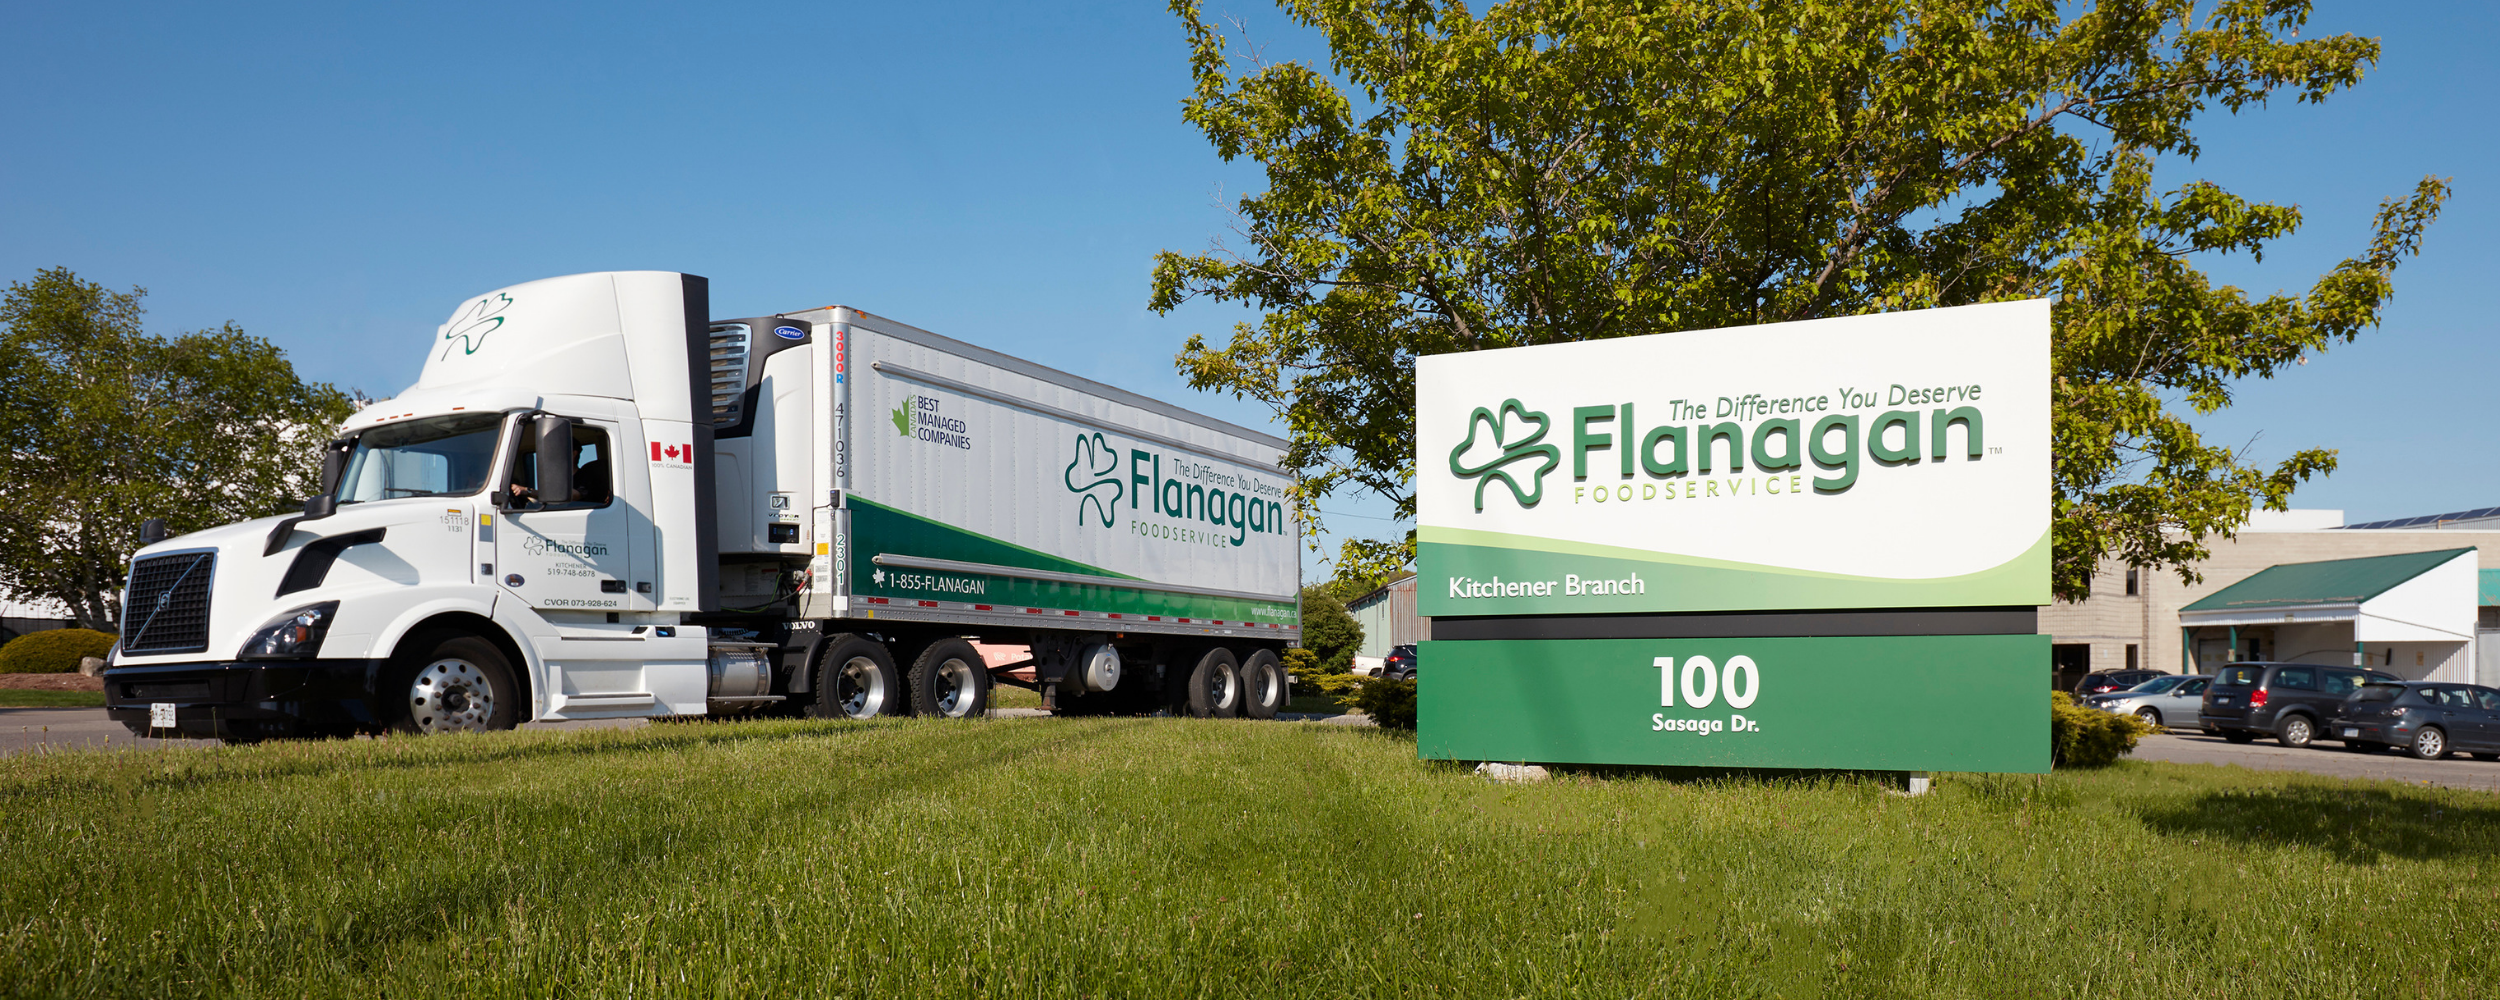 Flanagan Foodservice Kitchener.png